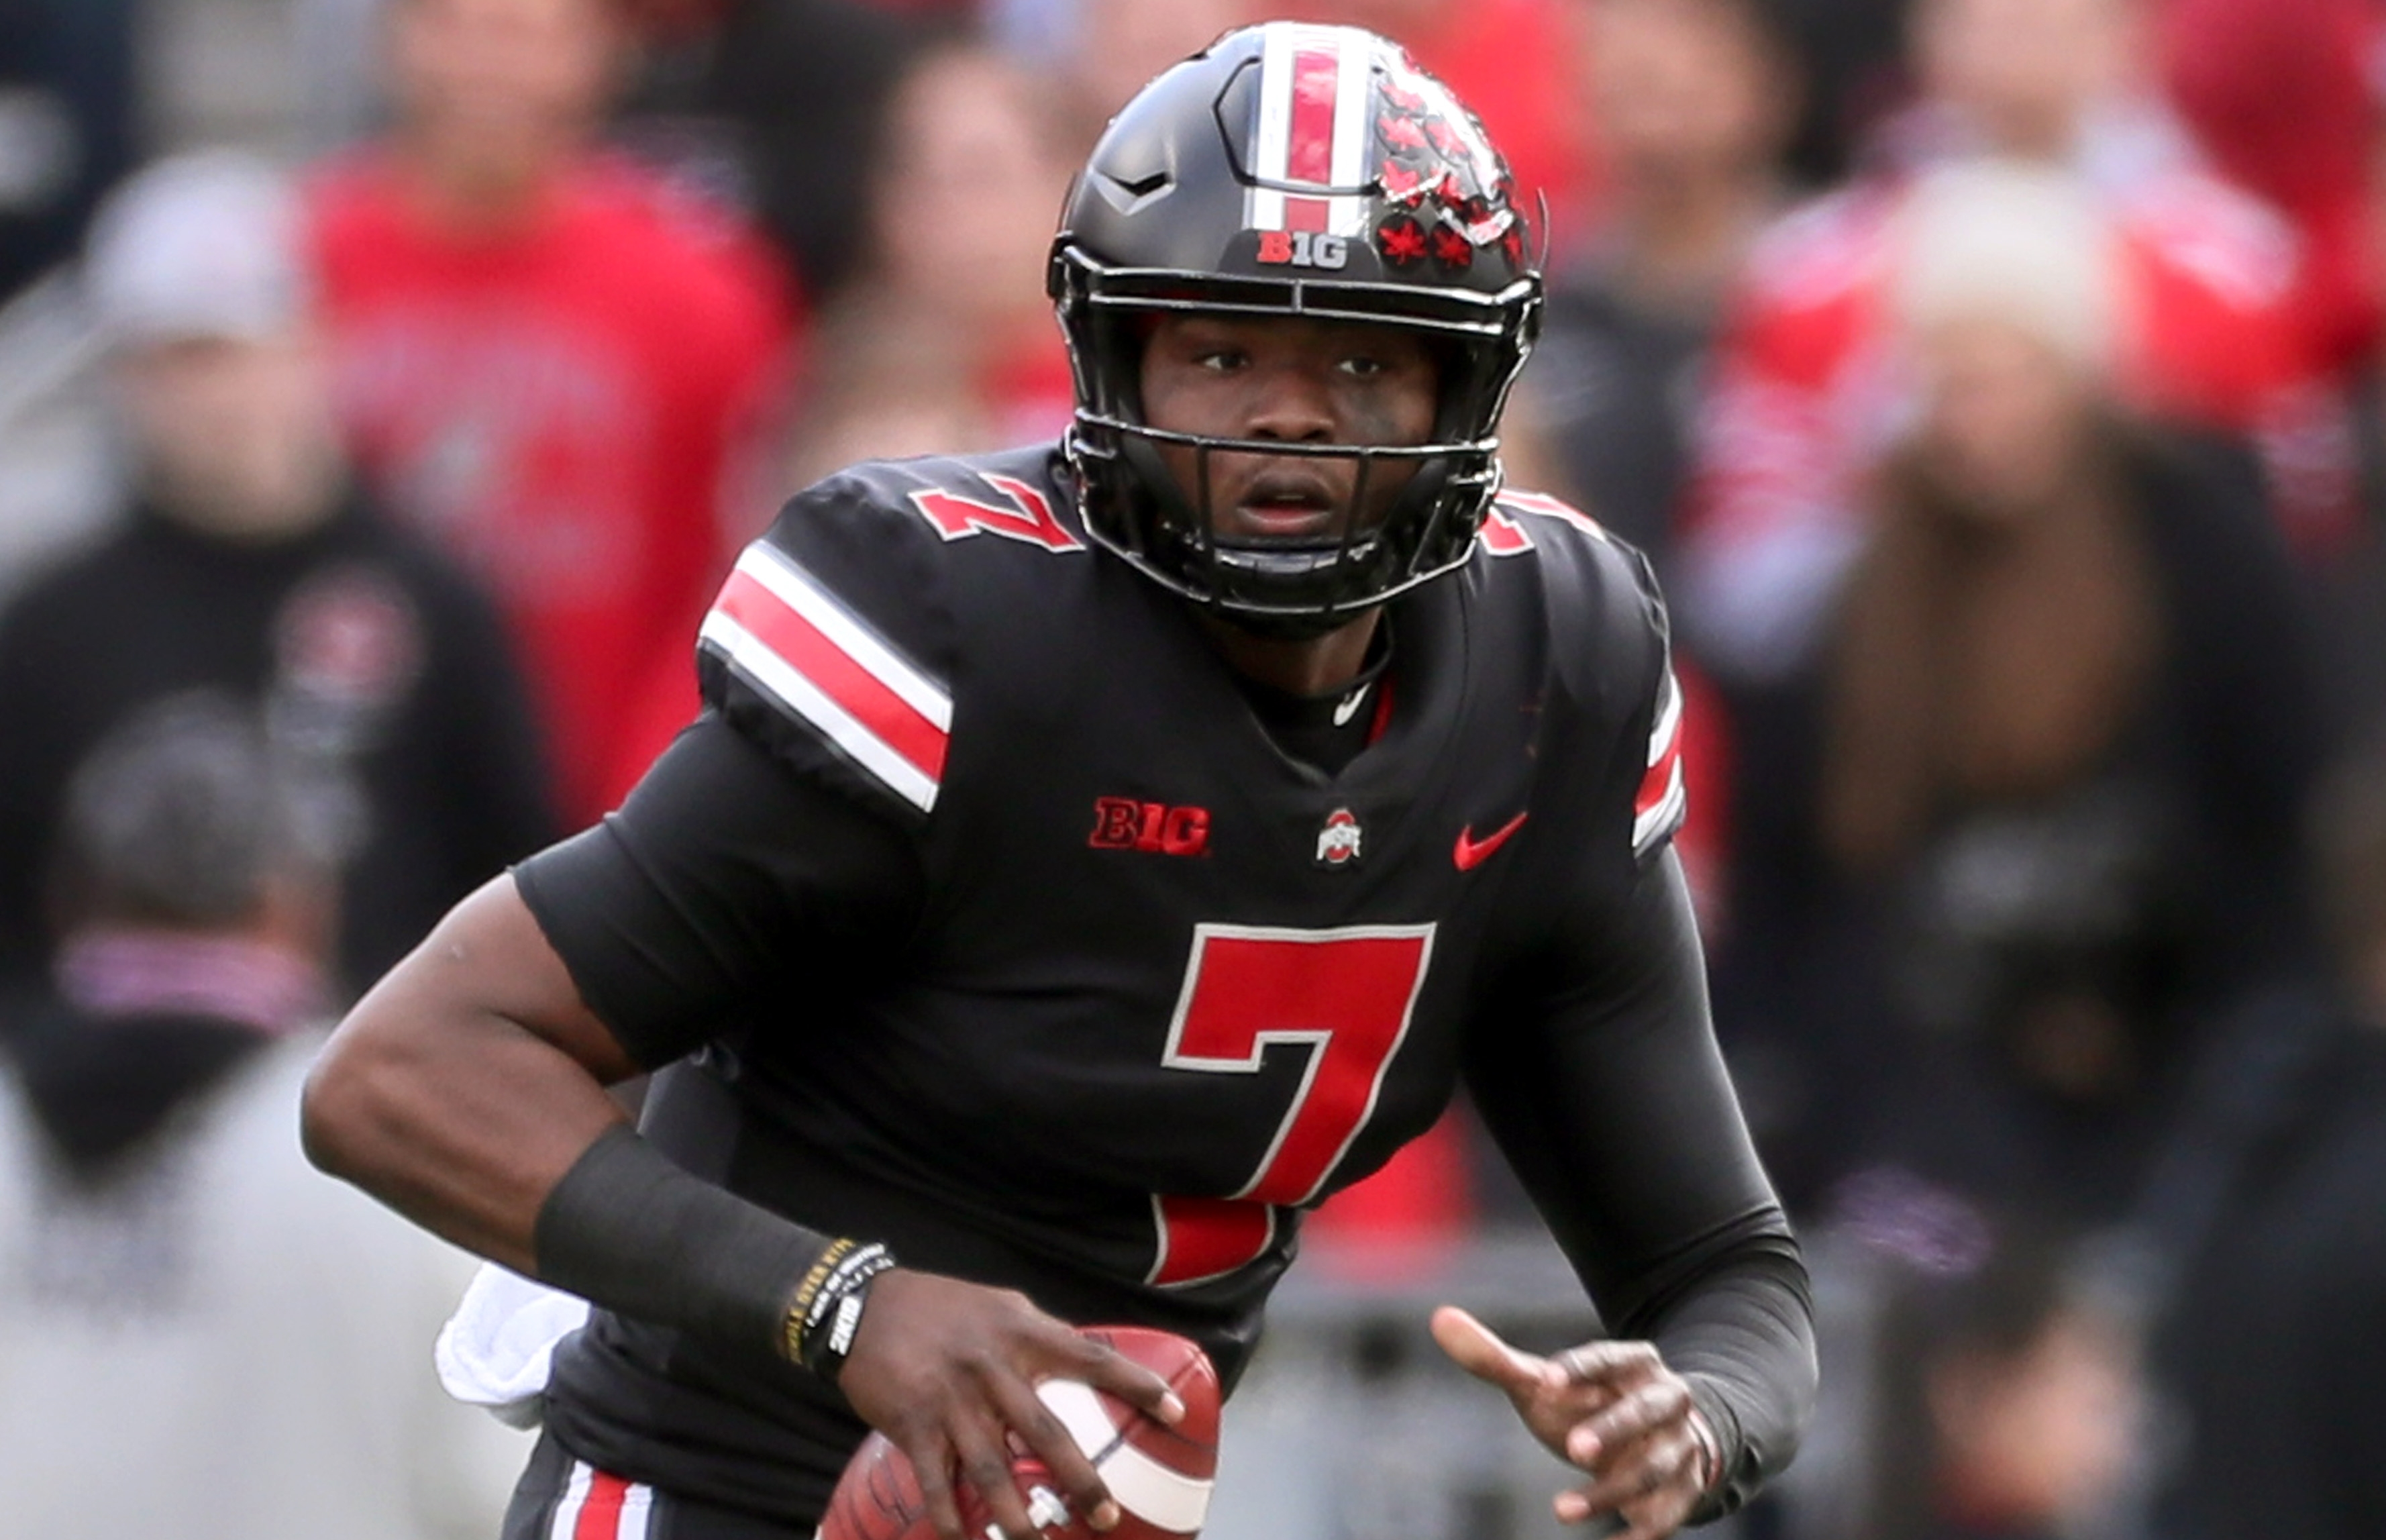 NFL Draft 2019: Where is cut-off point for 'difference-makers' in 1st round? Top-15? Top-20? Does Dwayne Haskins make the cut?